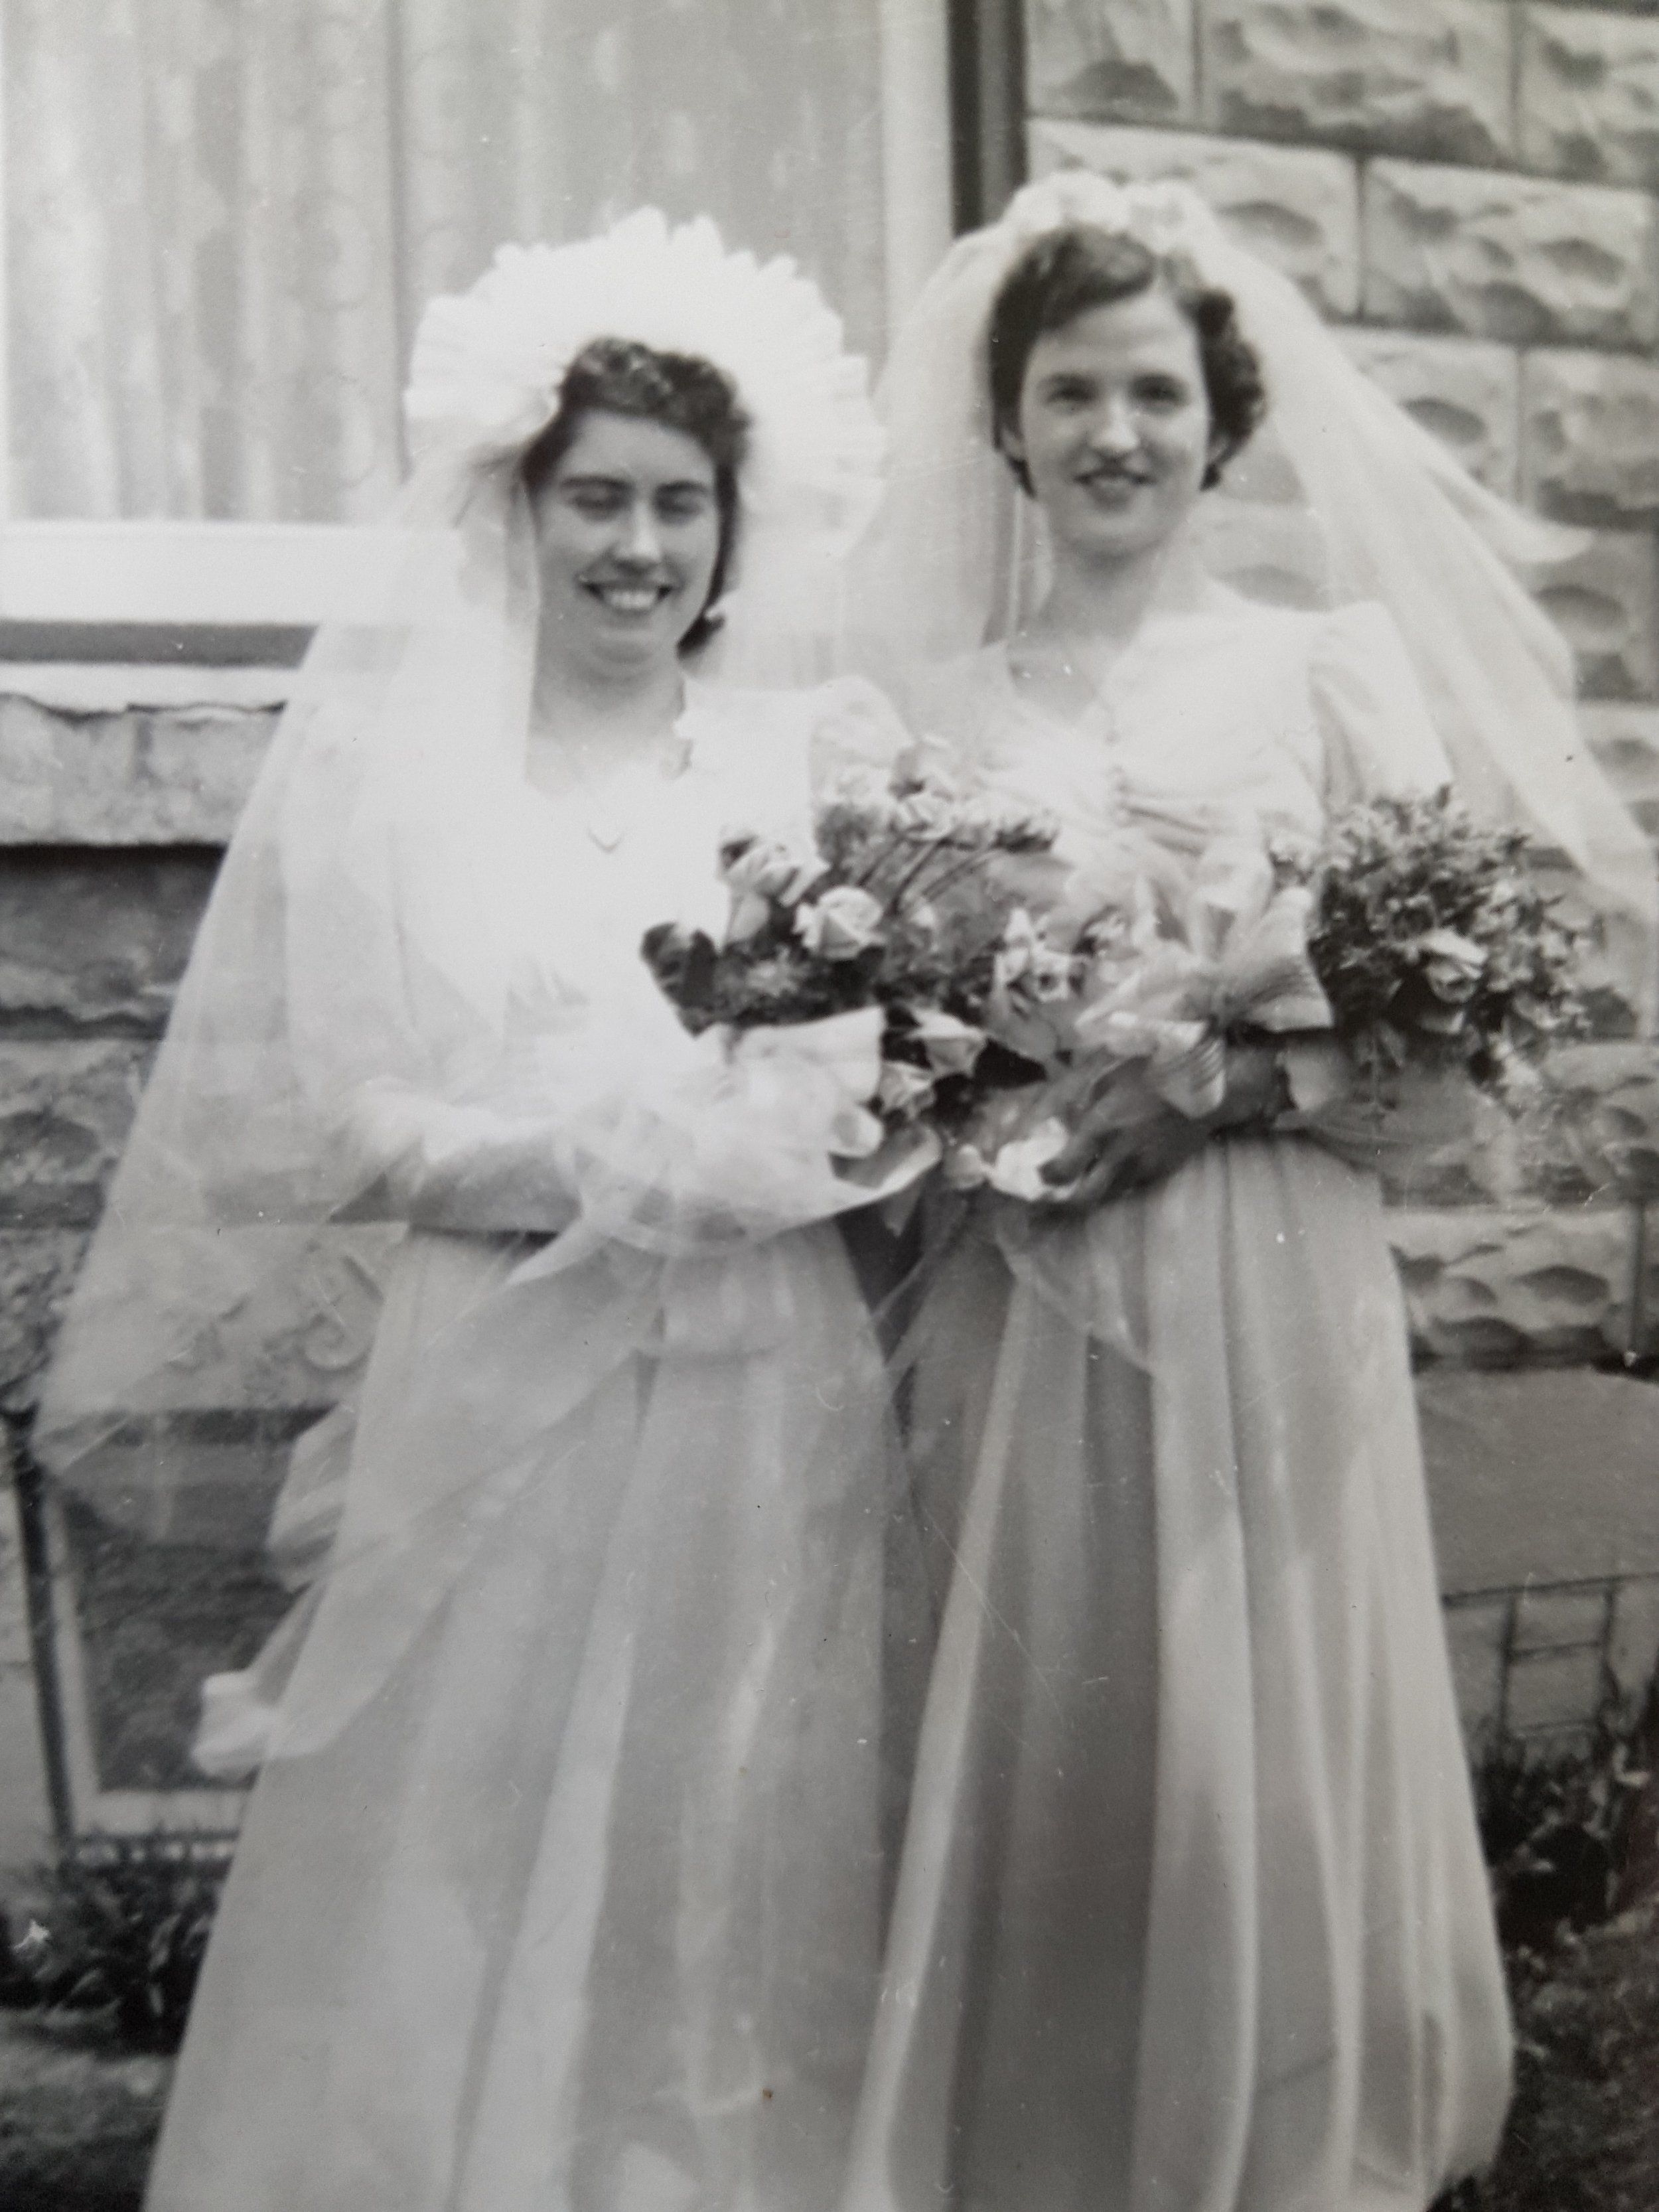 Verna & Ruth Wedding.jpg